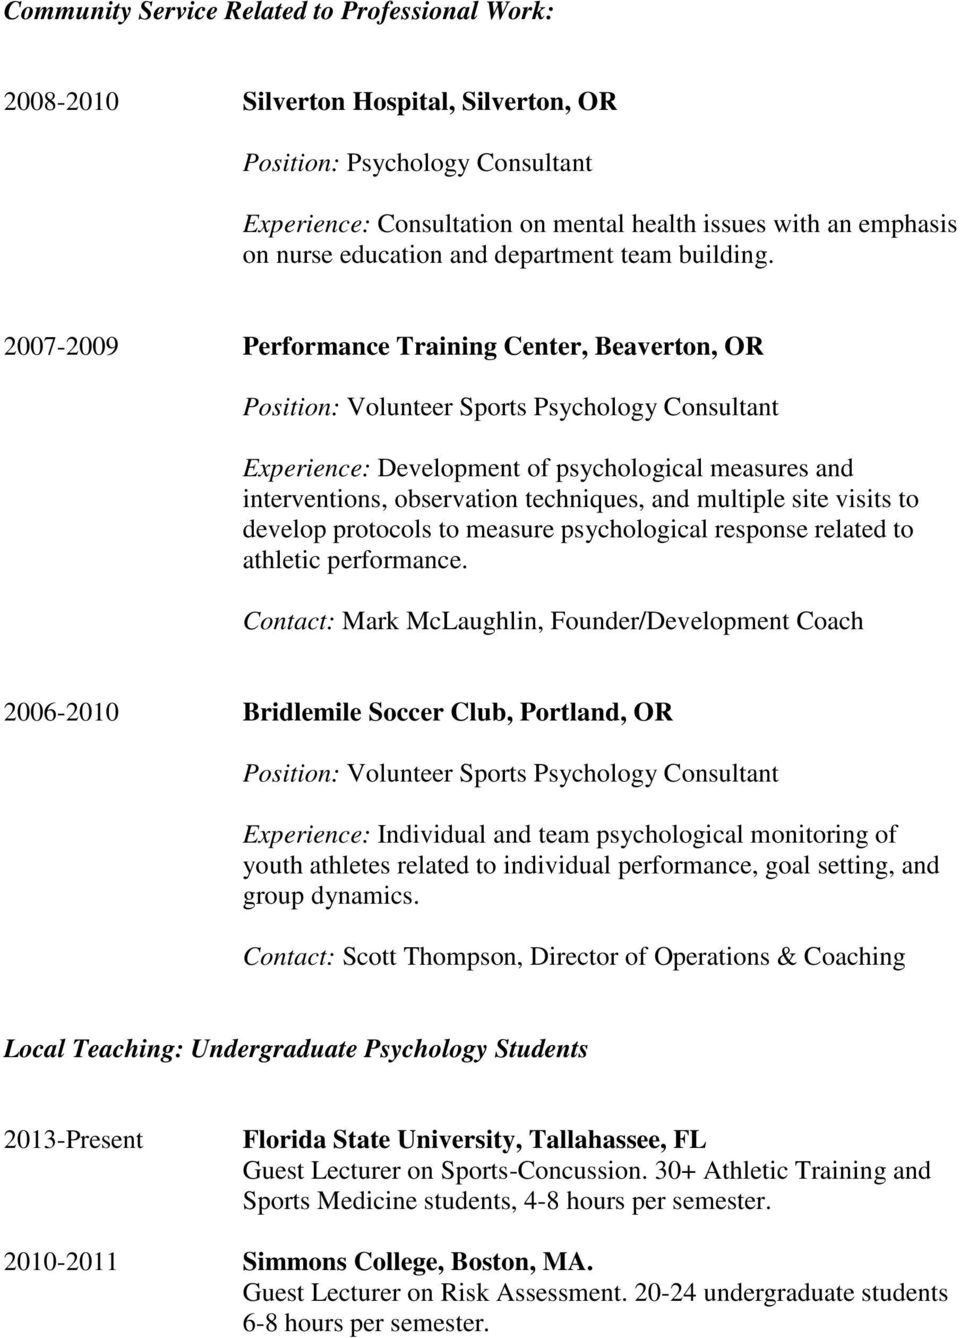 2007-2009 Performance Training Center, Beaverton, OR Position: Volunteer Sports Psychology Consultant Experience: Development of psychological measures and interventions, observation techniques, and